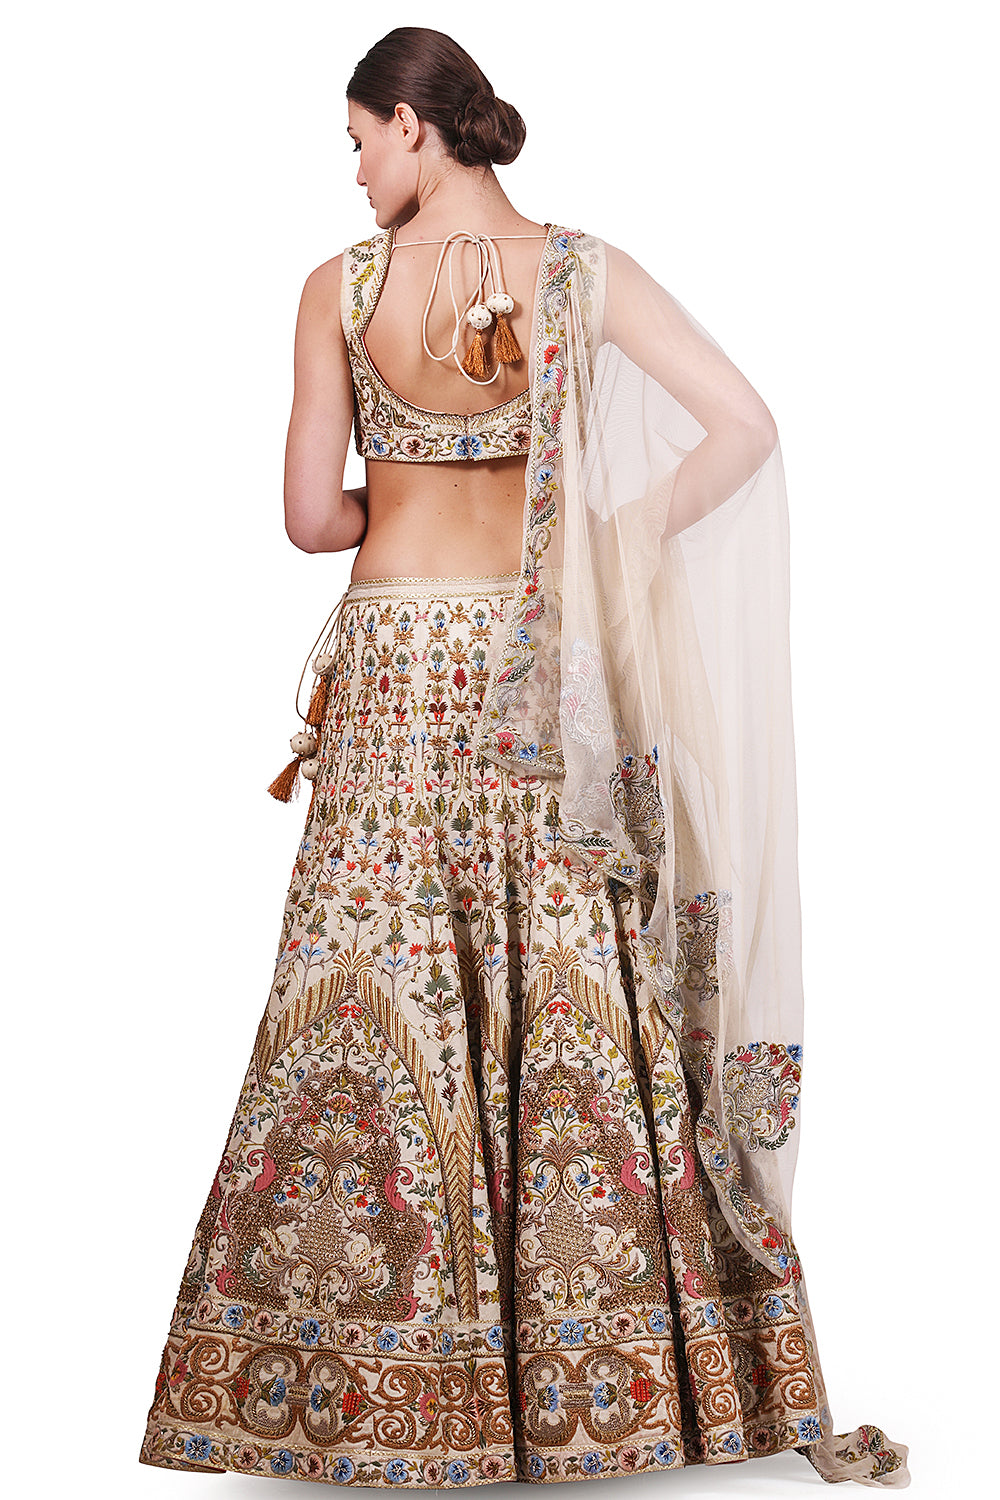 Embellished Lehenga, Blouse & Dupatta set - The Grand Trunk